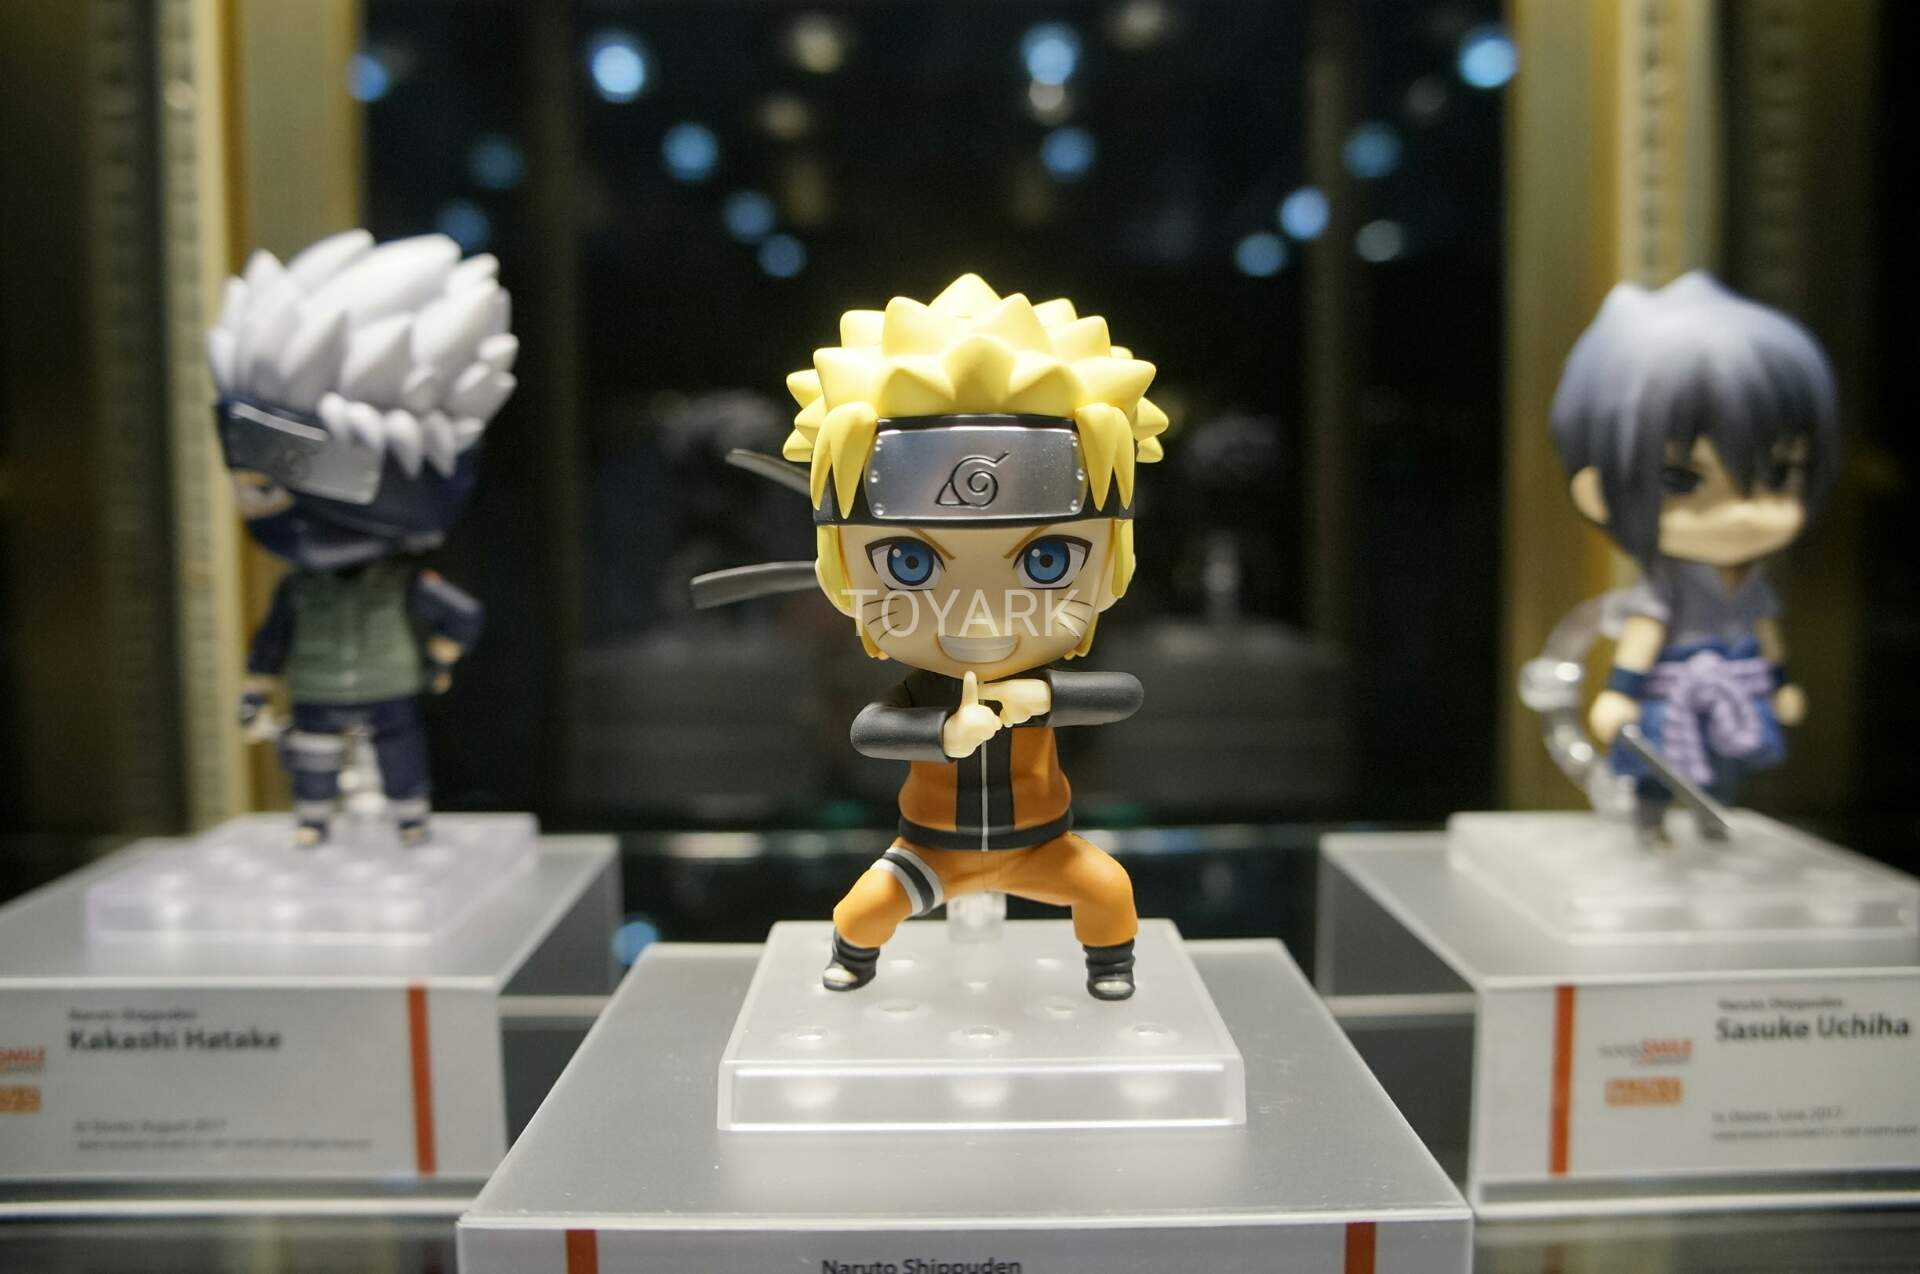 Toy Fair 2017: As melhores fotos do evento - Blog Farofeiros - Good Smile Company